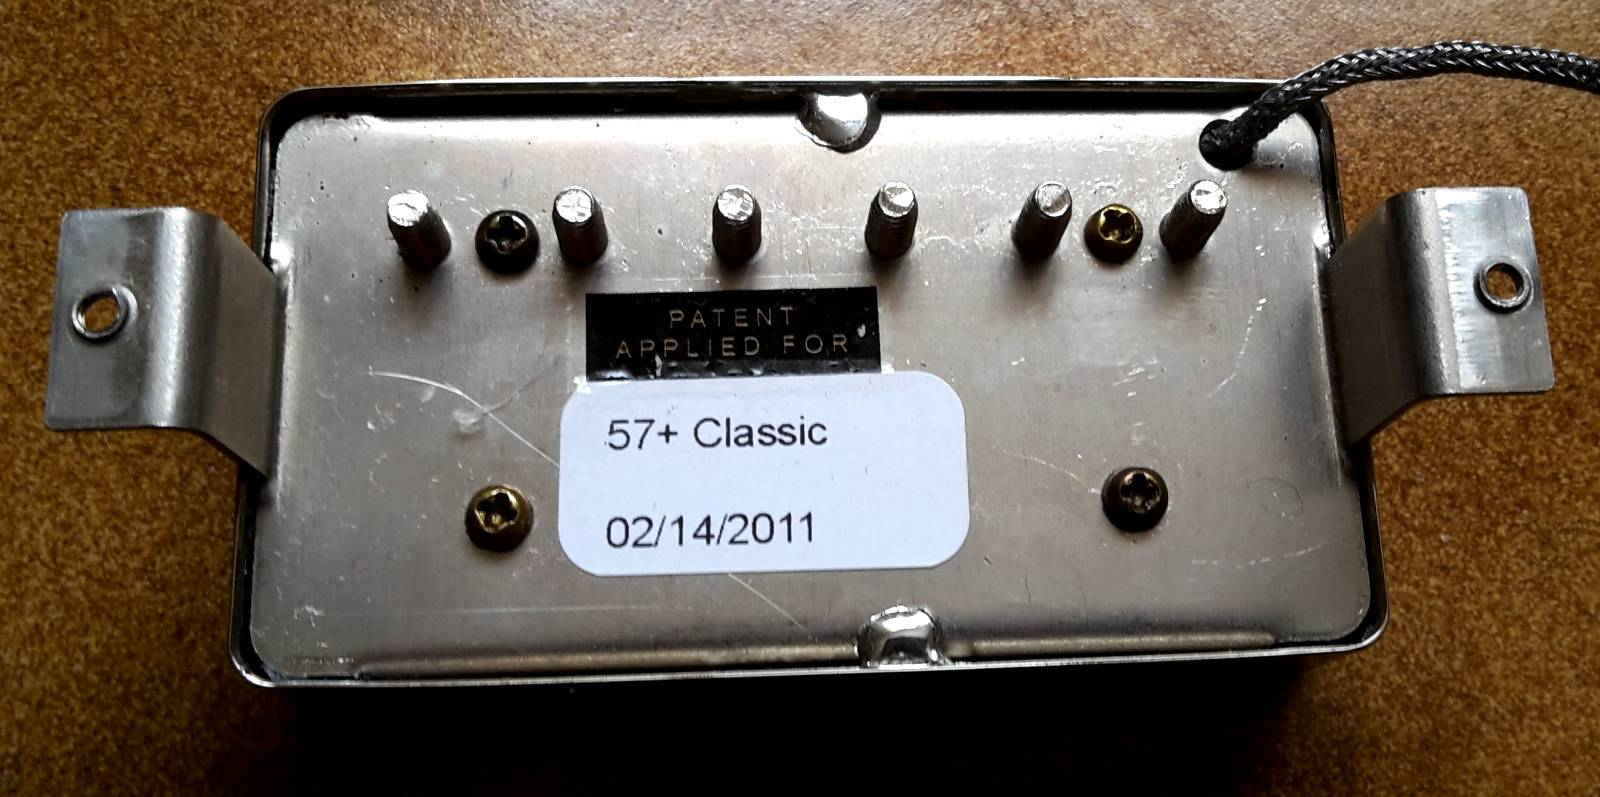 gibson classic 57 plus nickel cover bandit84_christophe images